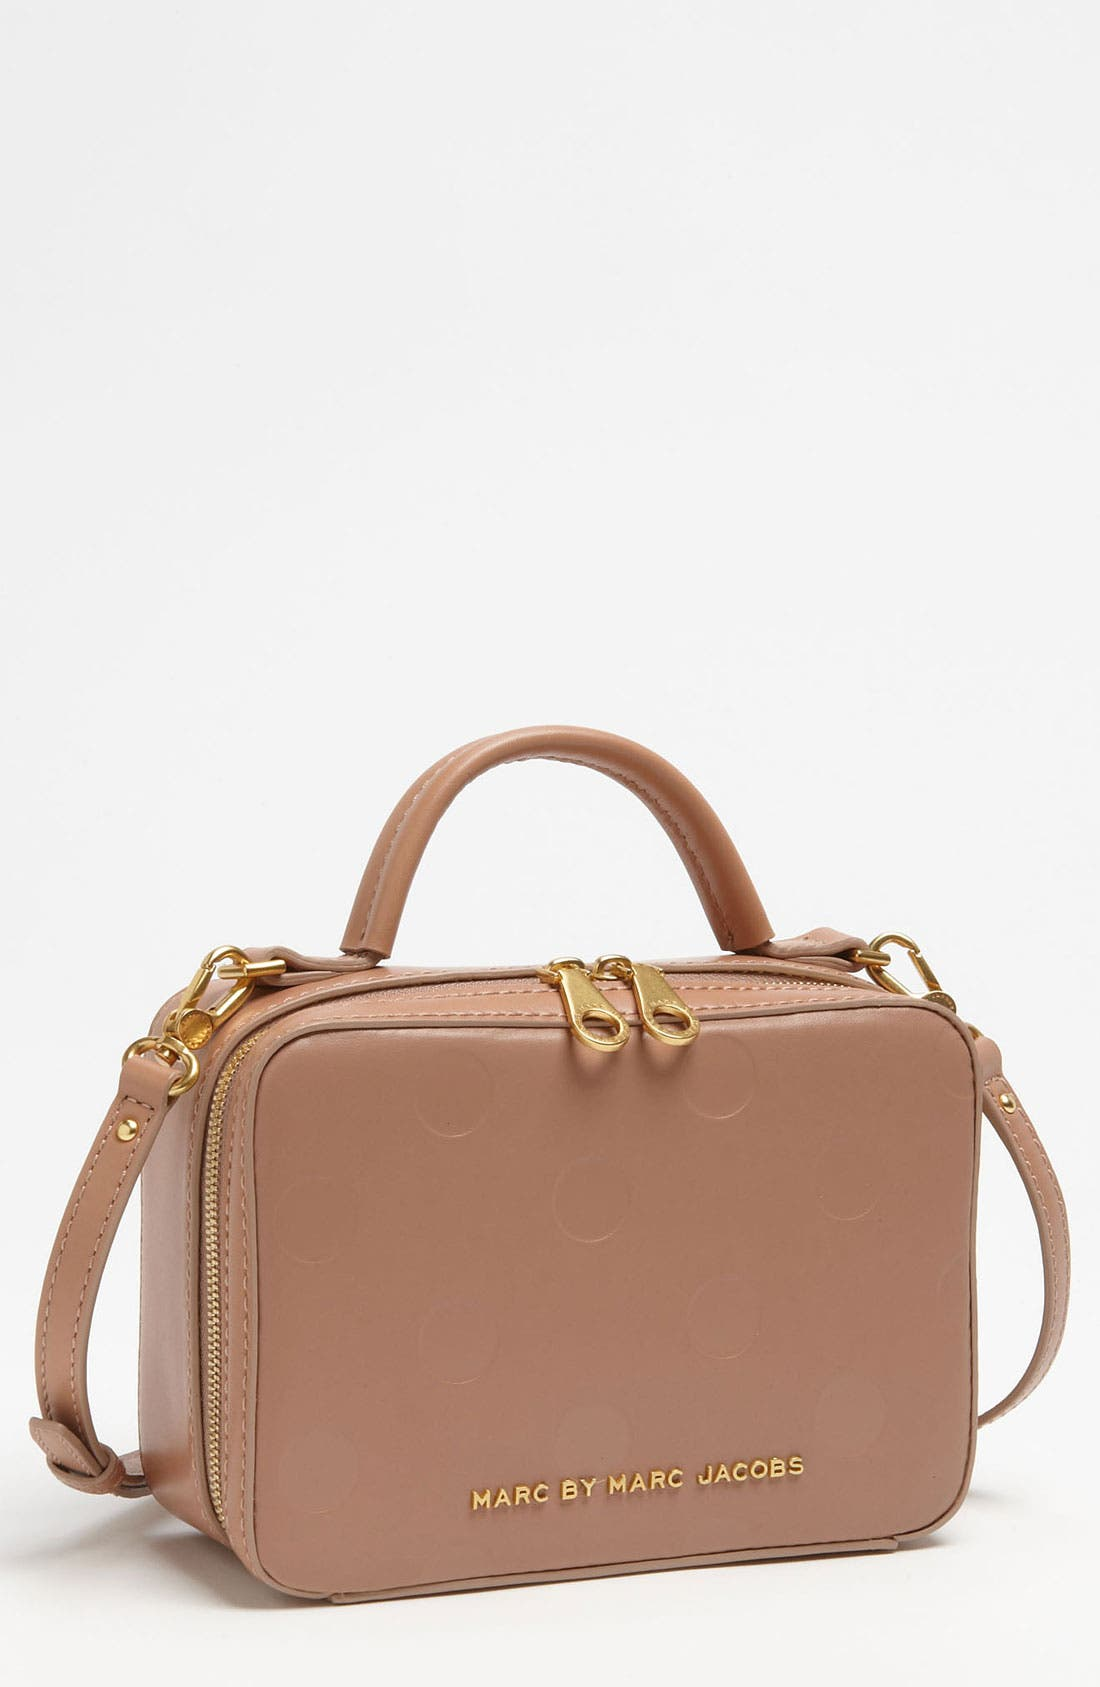 Main Image - MARC BY MARC JACOBS 'Party Box' Leather Satchel